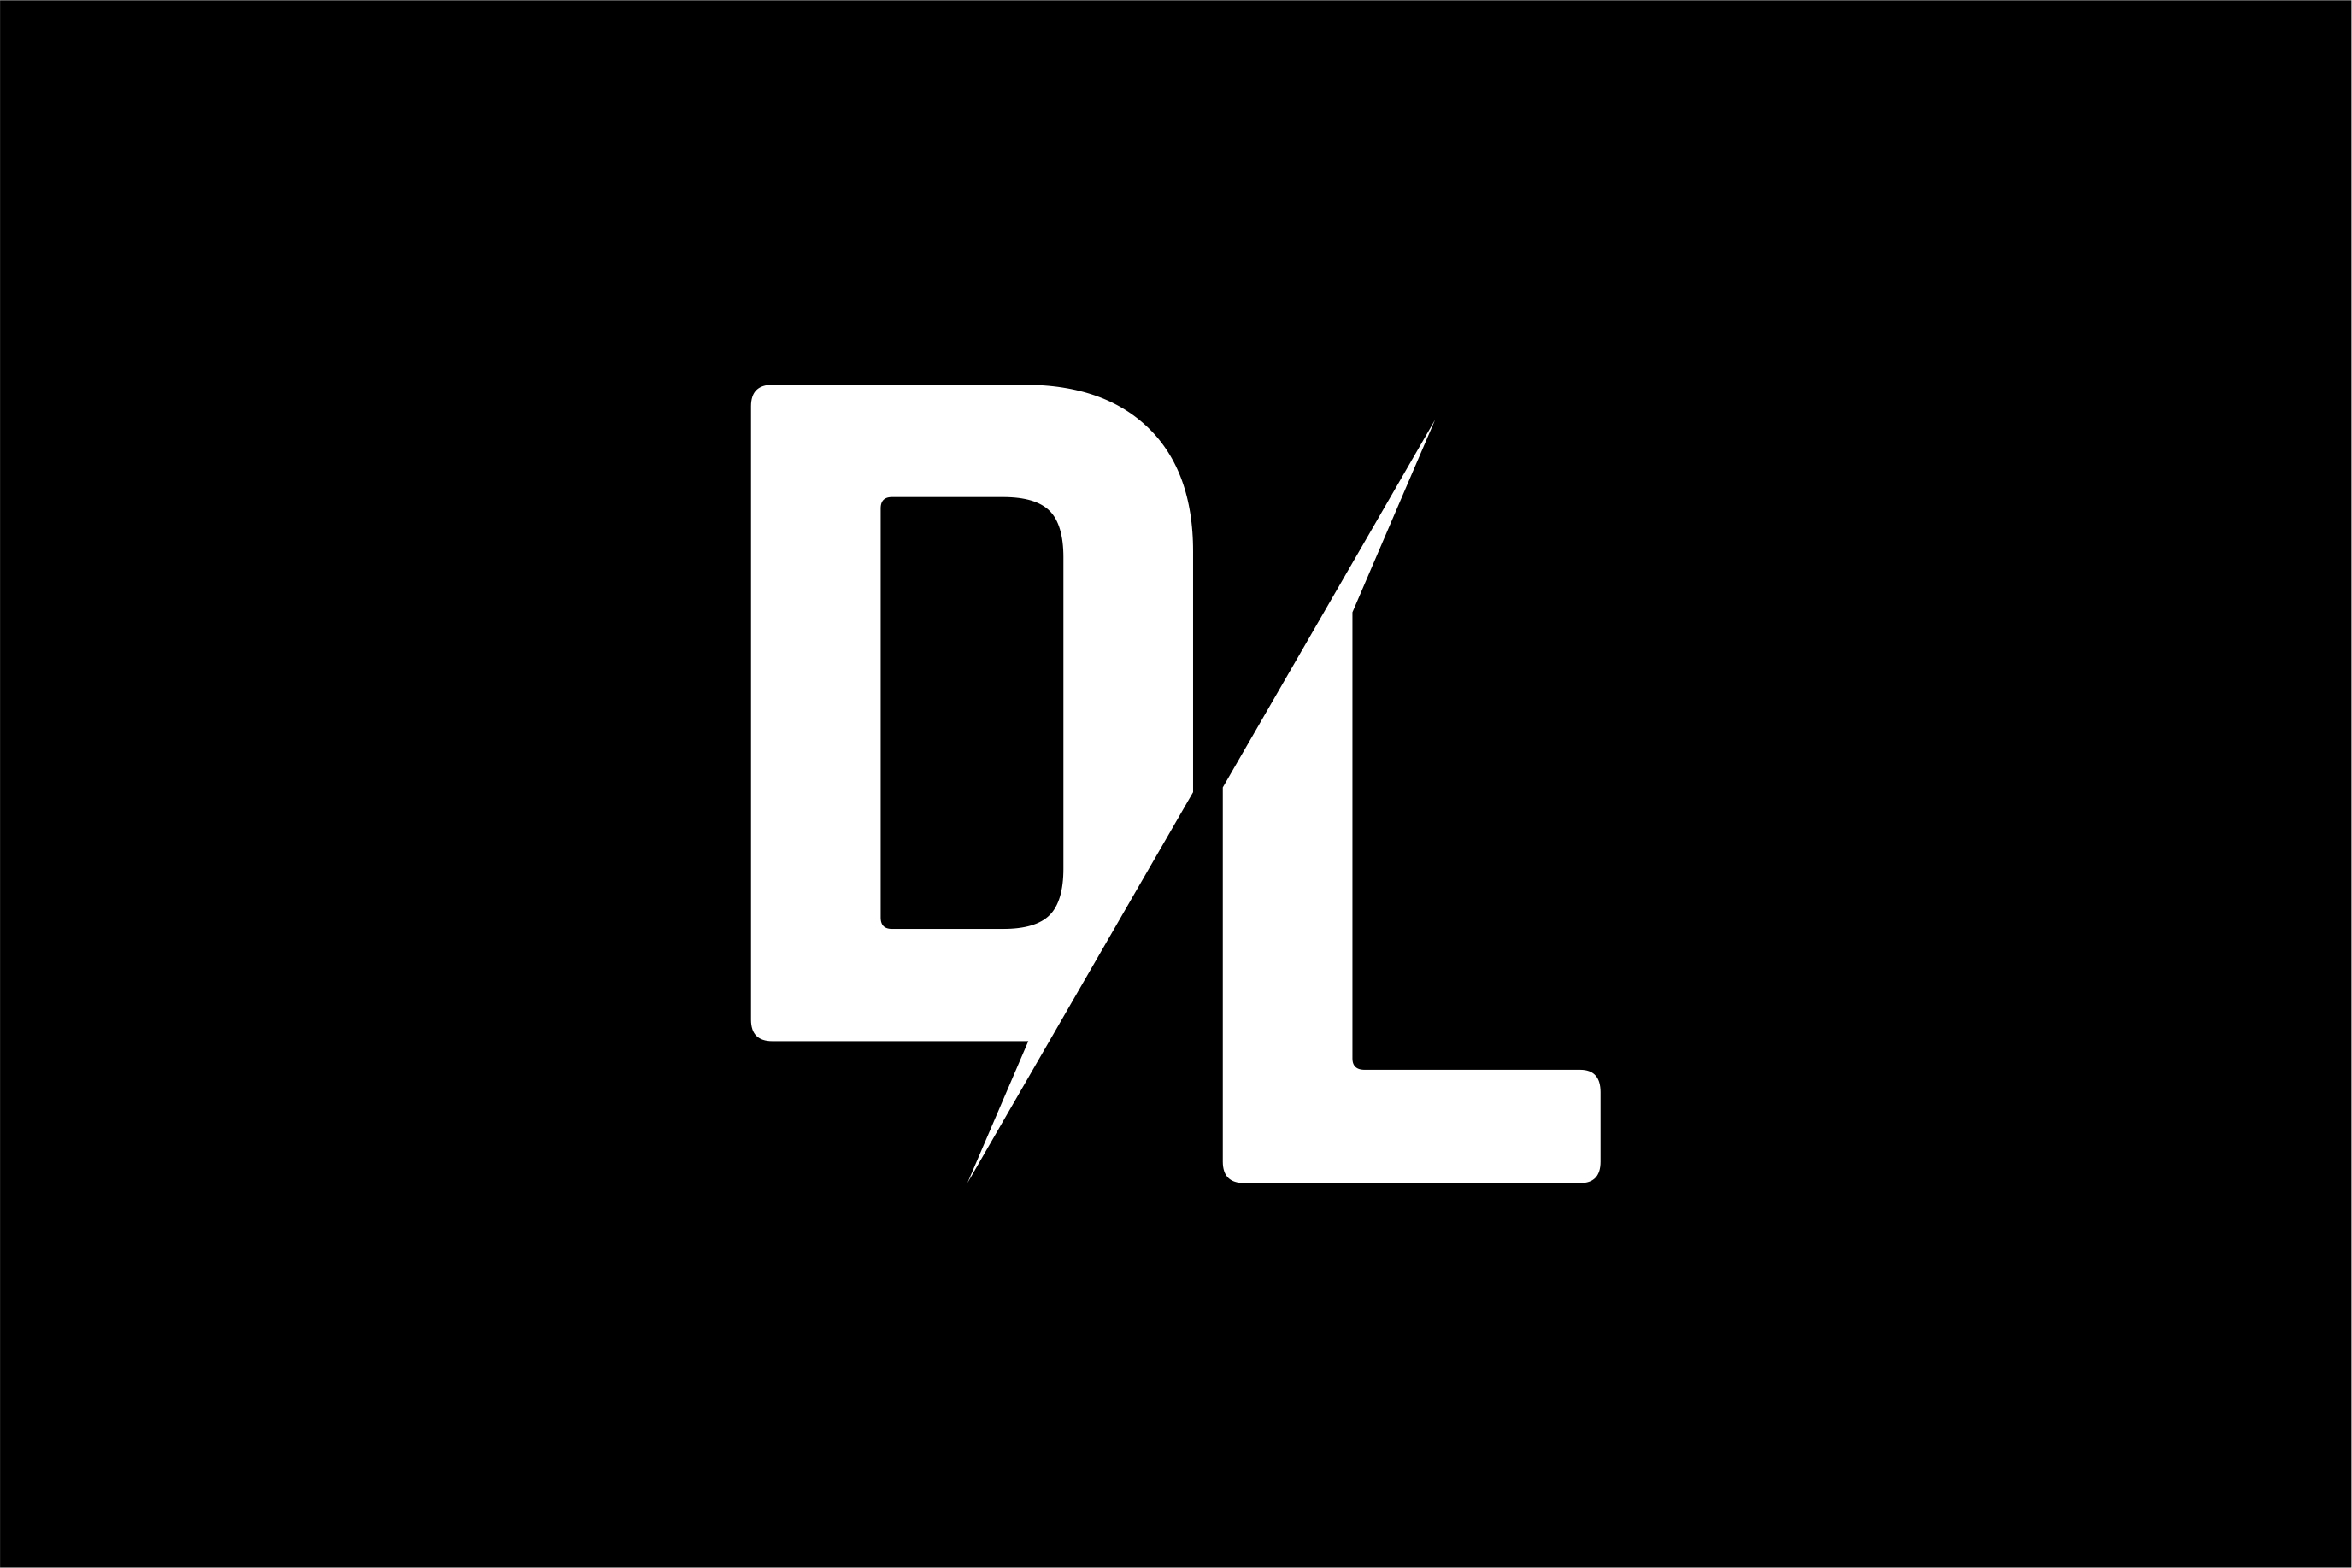 30+ Dl Logo Images Wallpapers